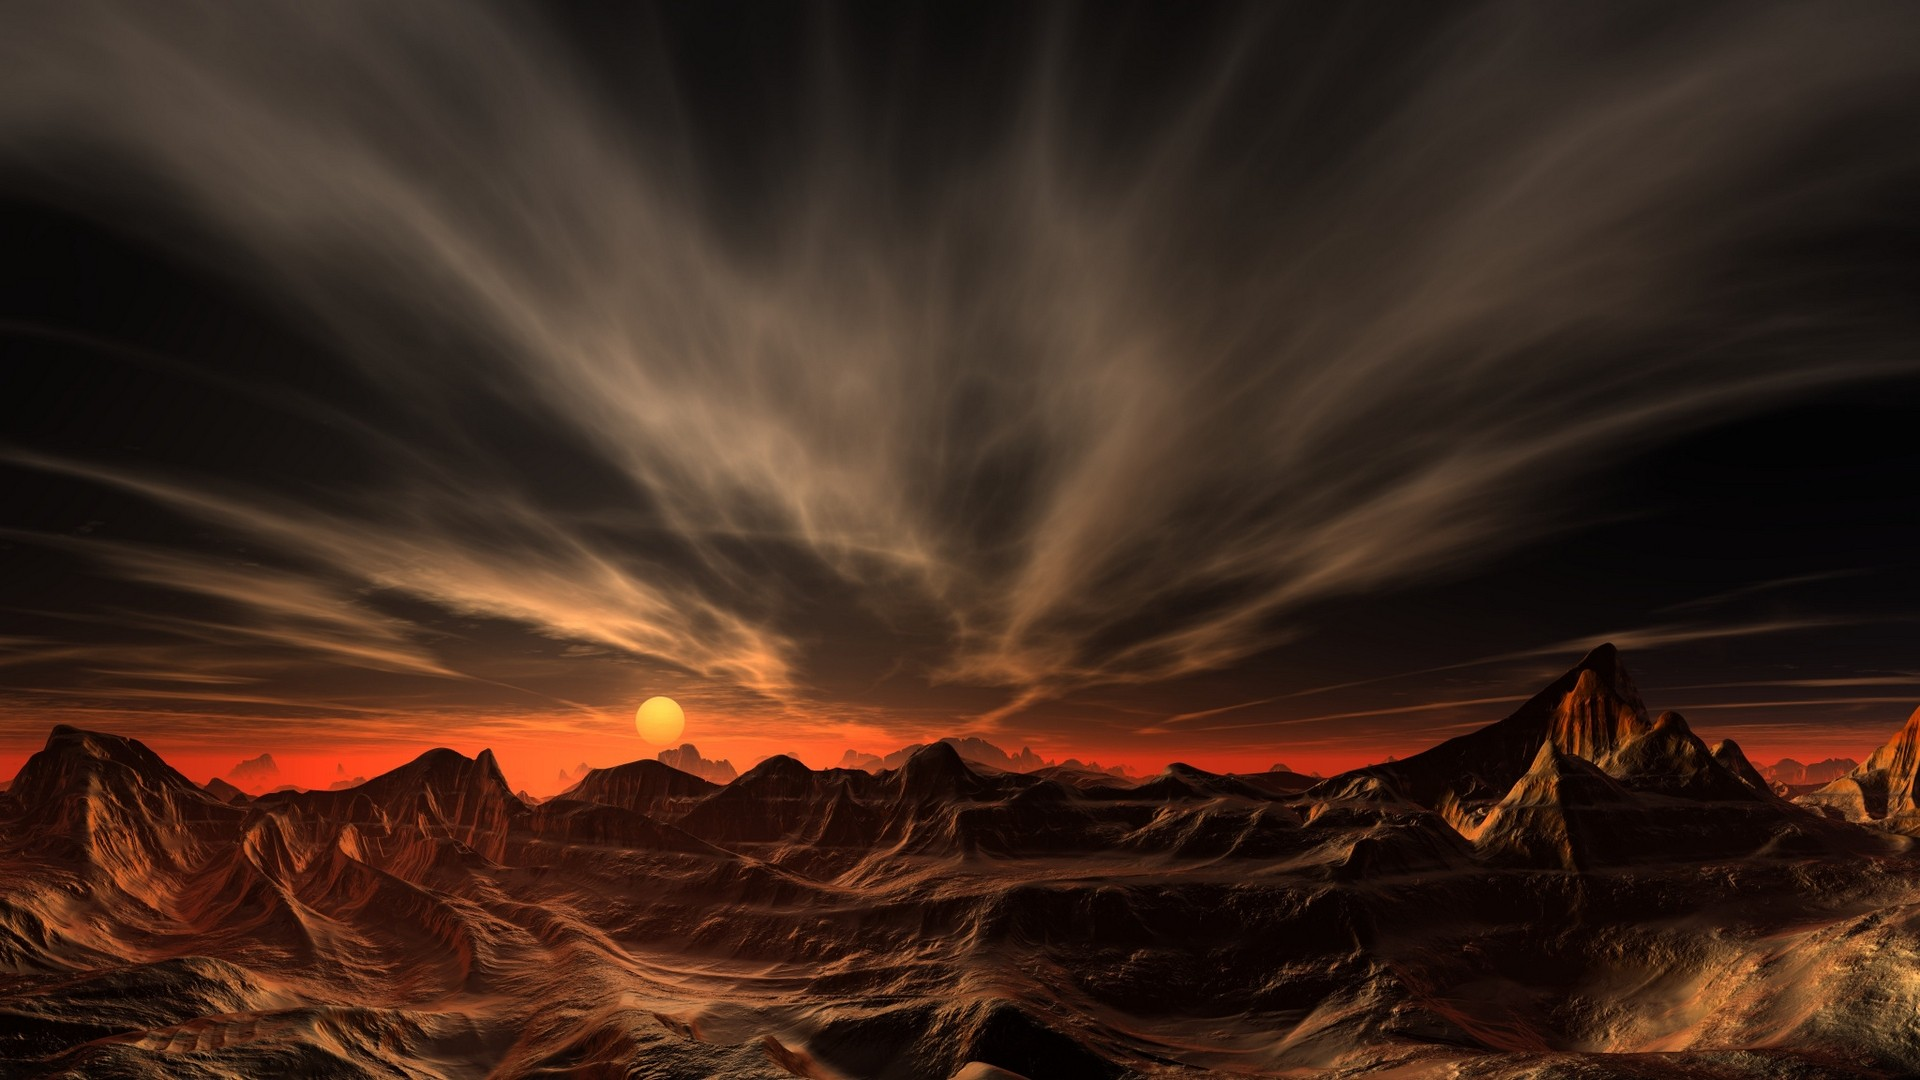 Mountain Clouds Red Sunset Desert Erosion